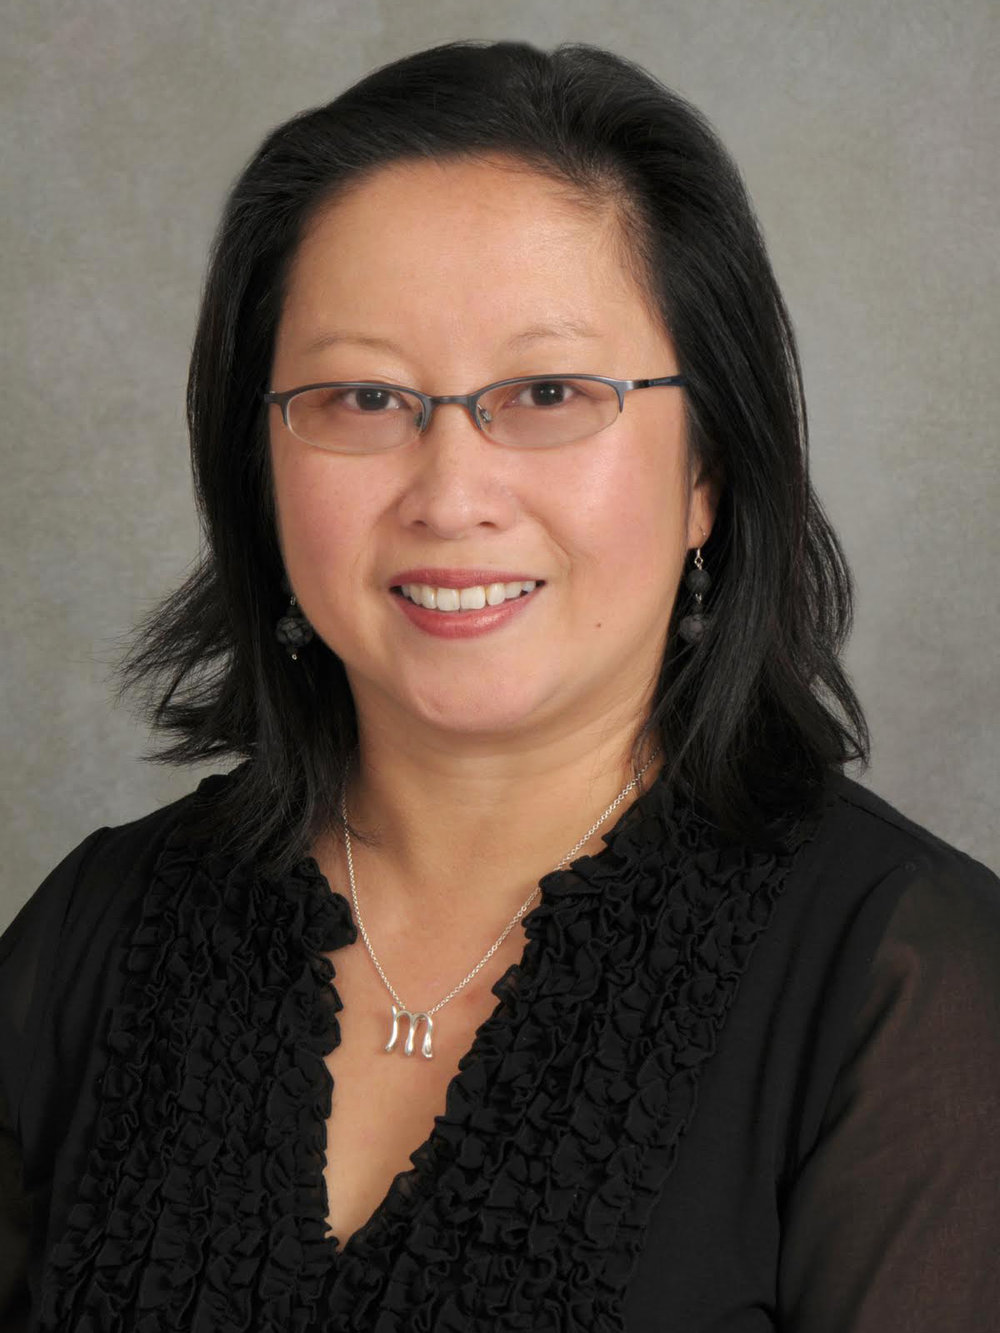 MeiLin Wan - Vice President, Textile Sales at Applied DNA Sciences